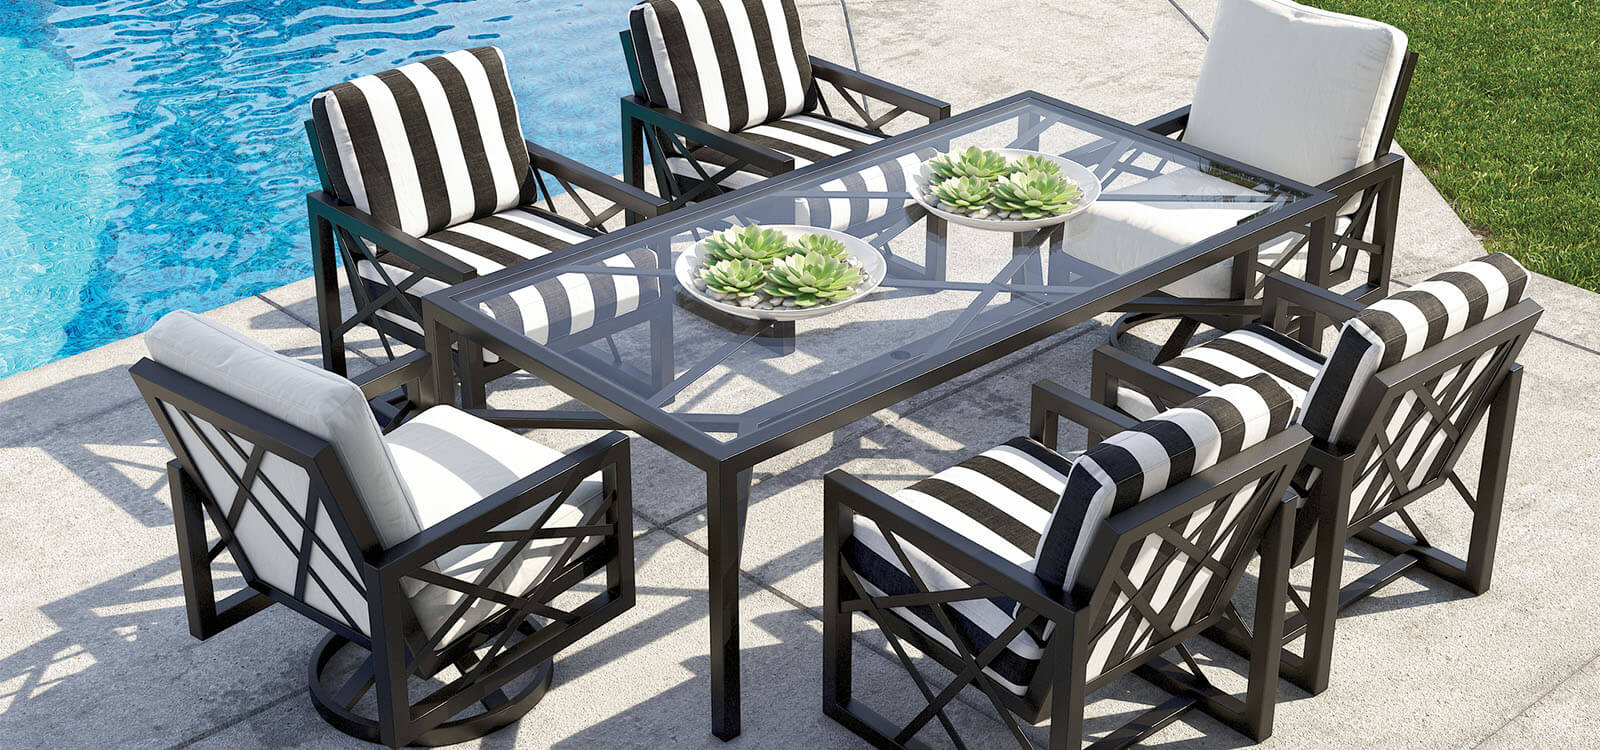 Patio & Outdoor Furniture in Jupiter, FL - Casual Living ... on Porch & Patio Casual Living id=40429